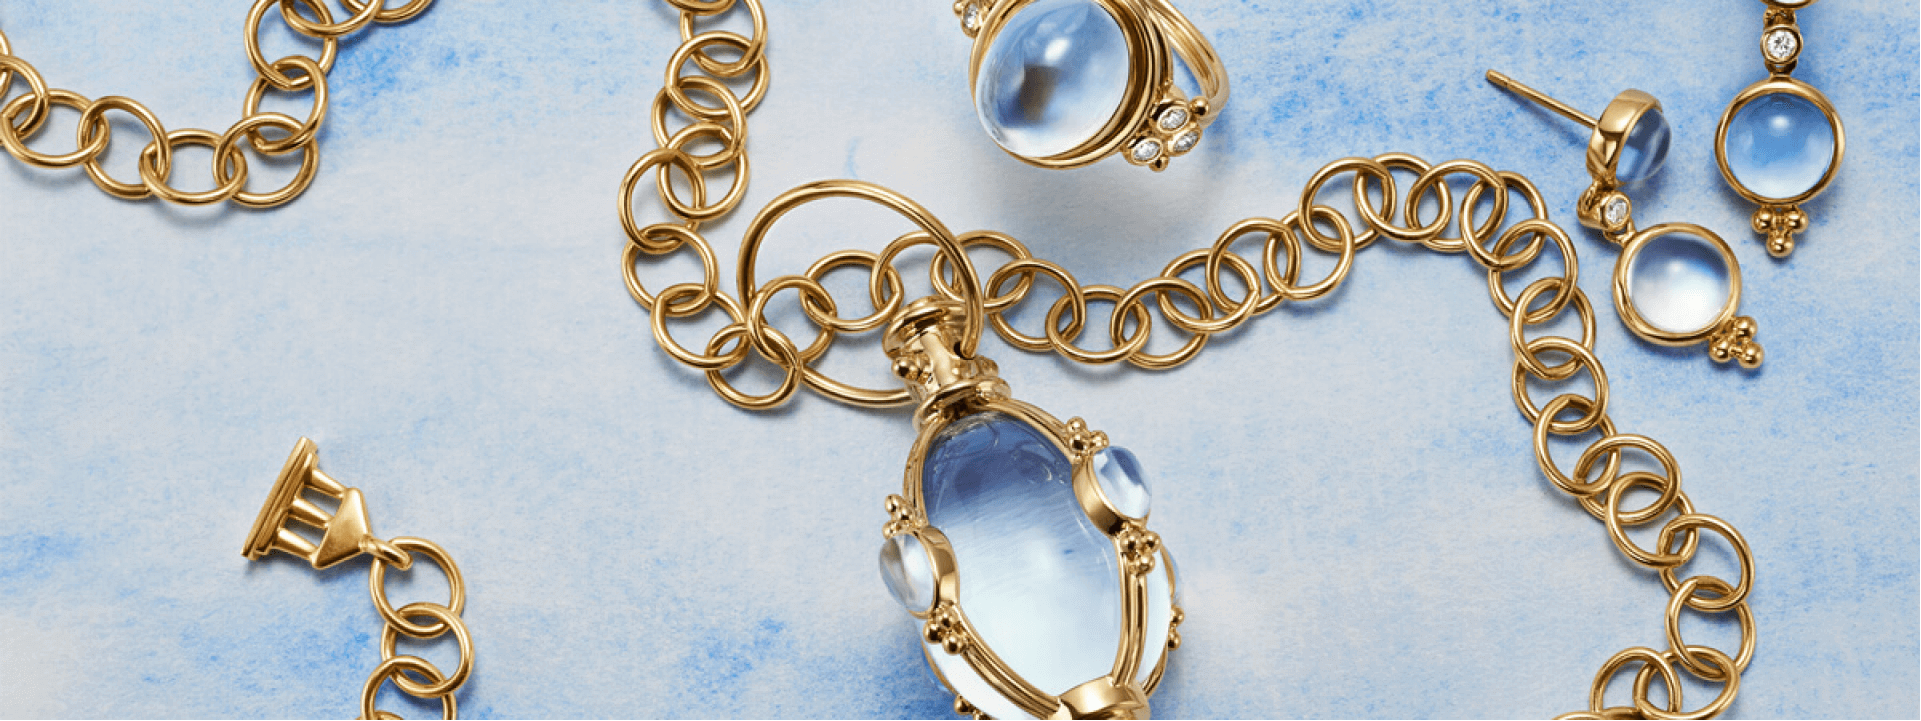 Luxury jewelry on blue textured background